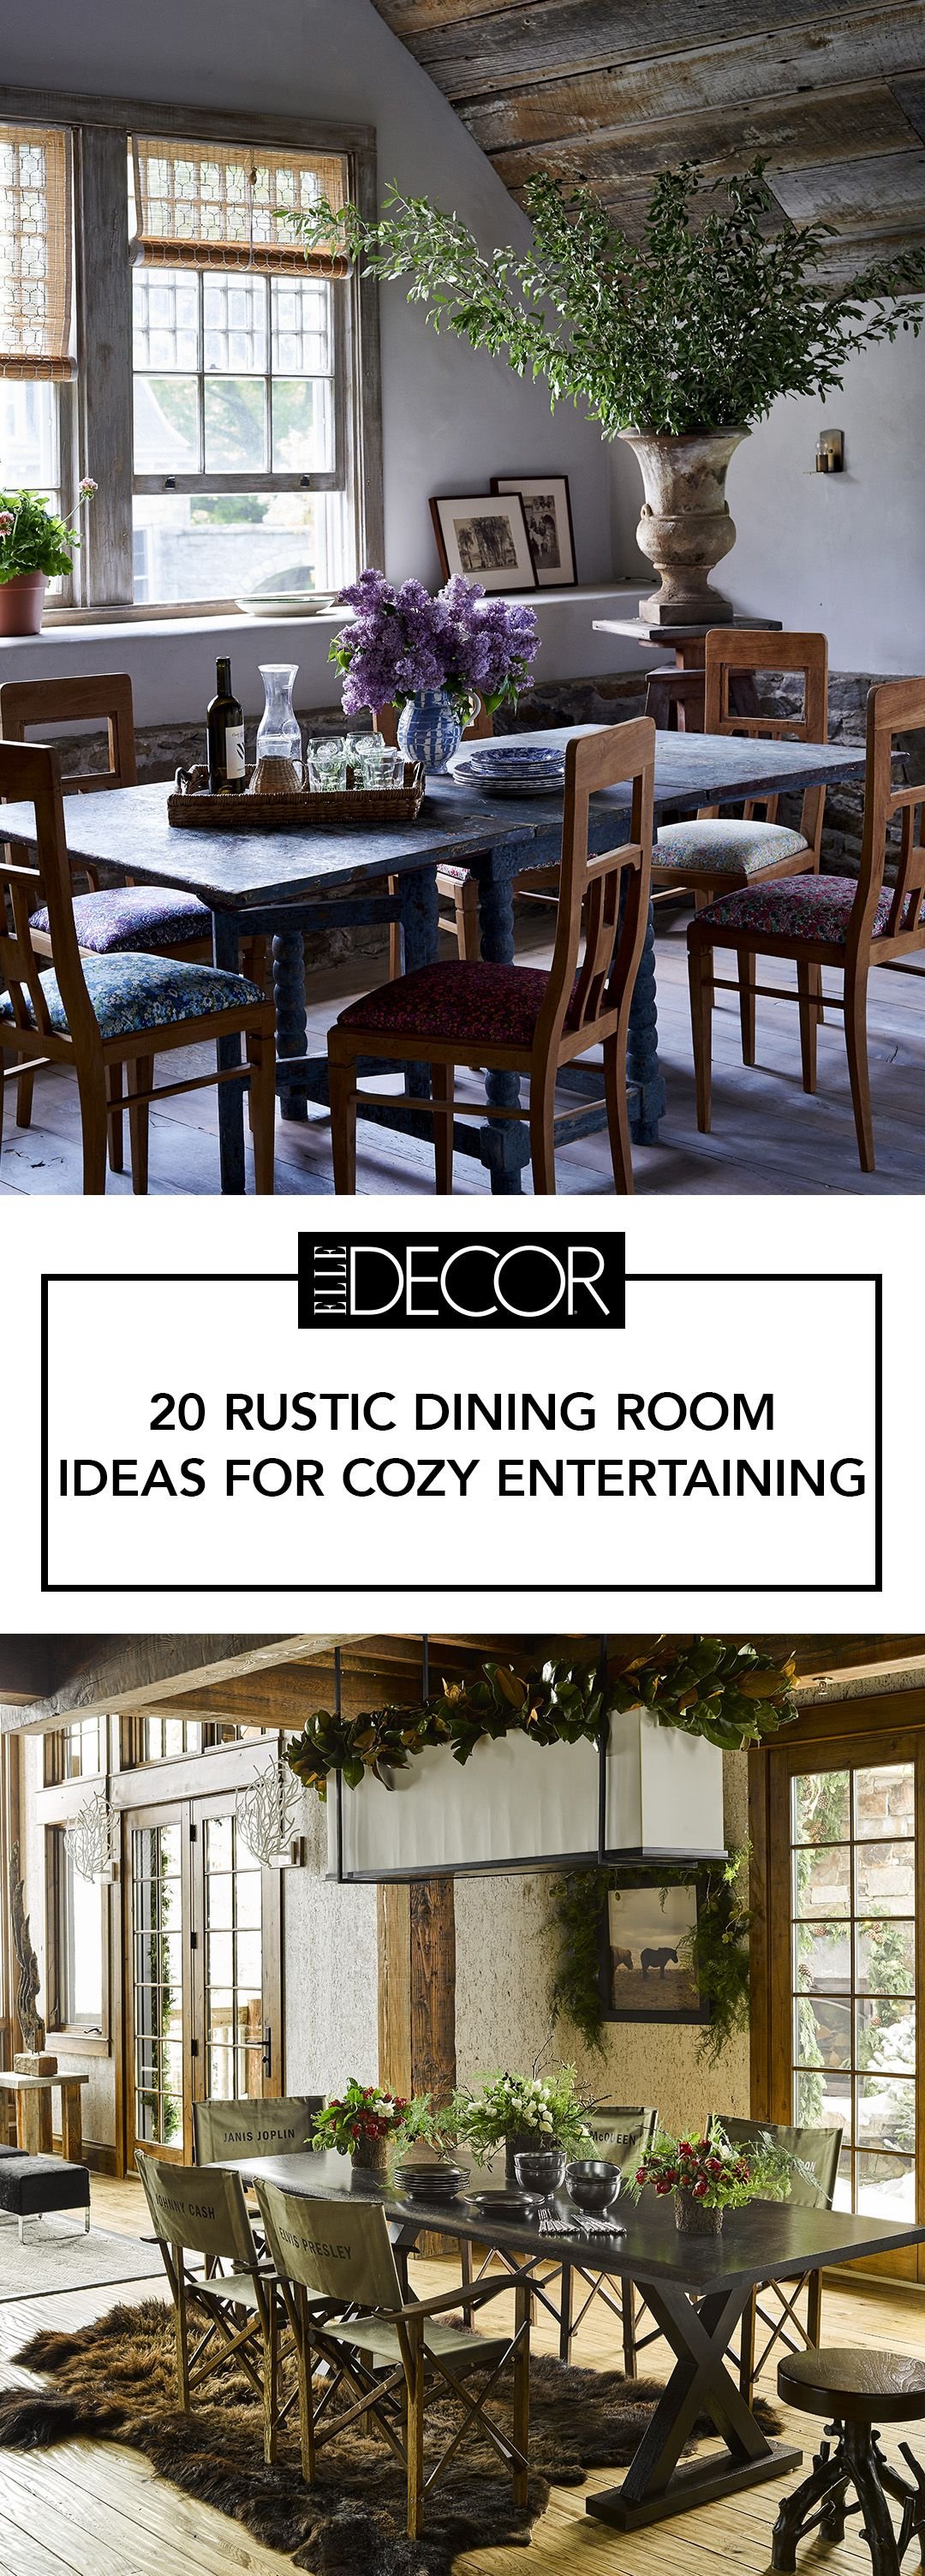 25 Rustic Dining Room Ideas - Farmhouse Style Dining Room ...